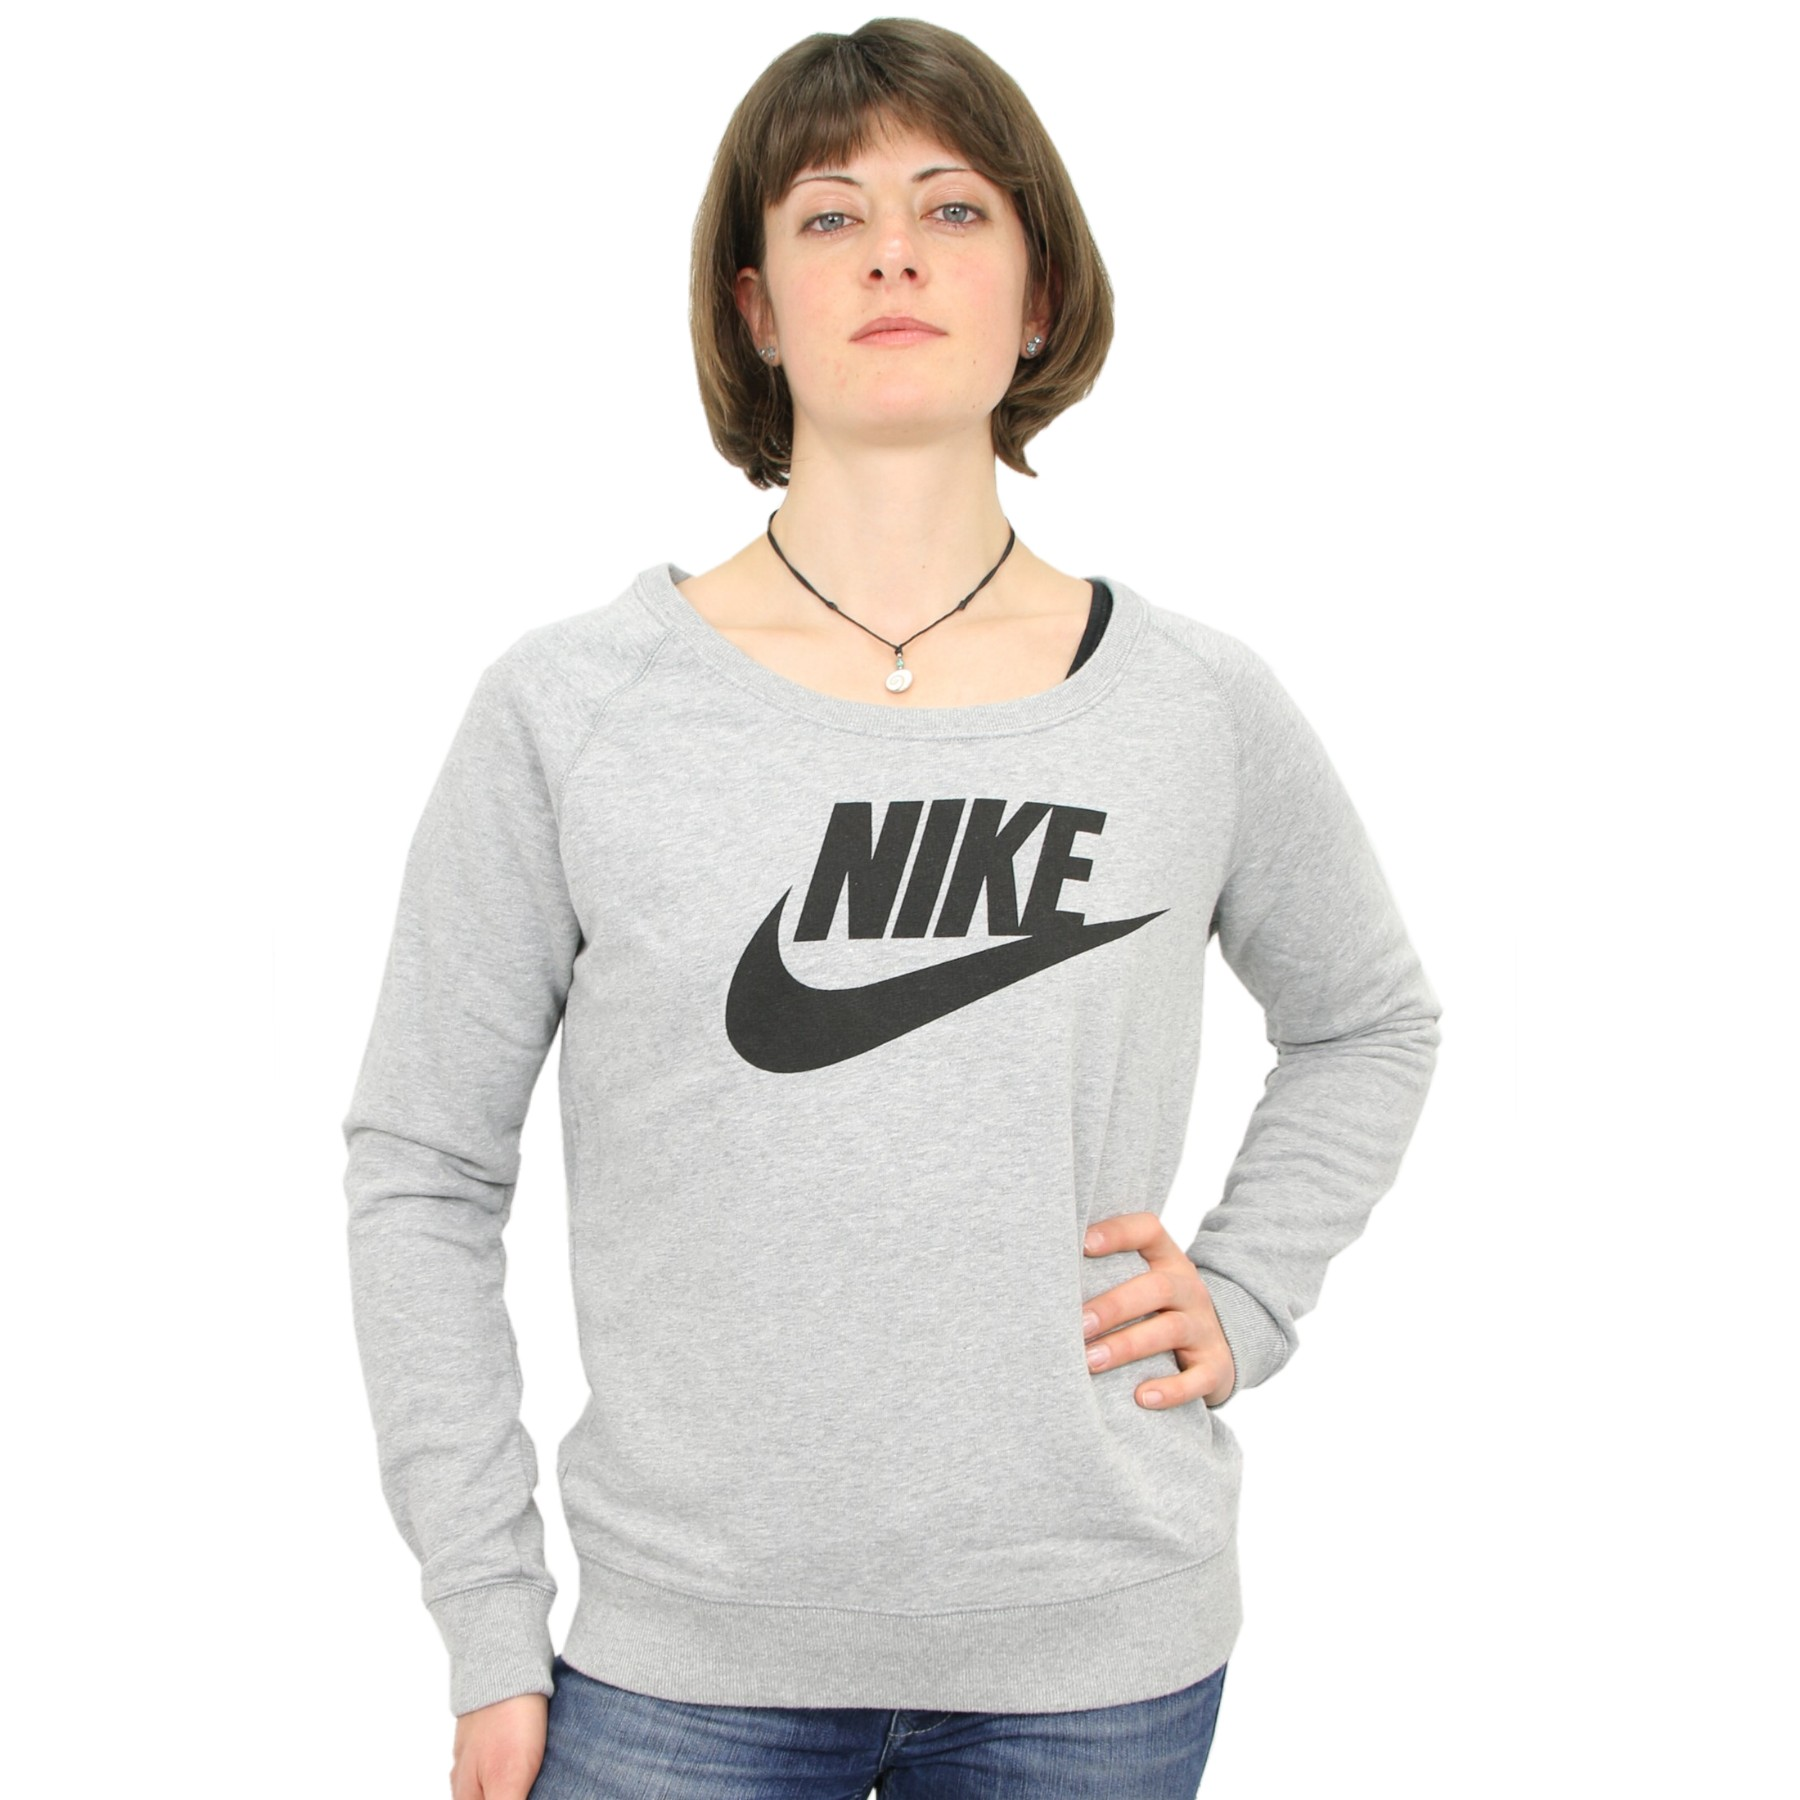 nike rally crew sweatshirt shirt pullover damen grau ebay. Black Bedroom Furniture Sets. Home Design Ideas